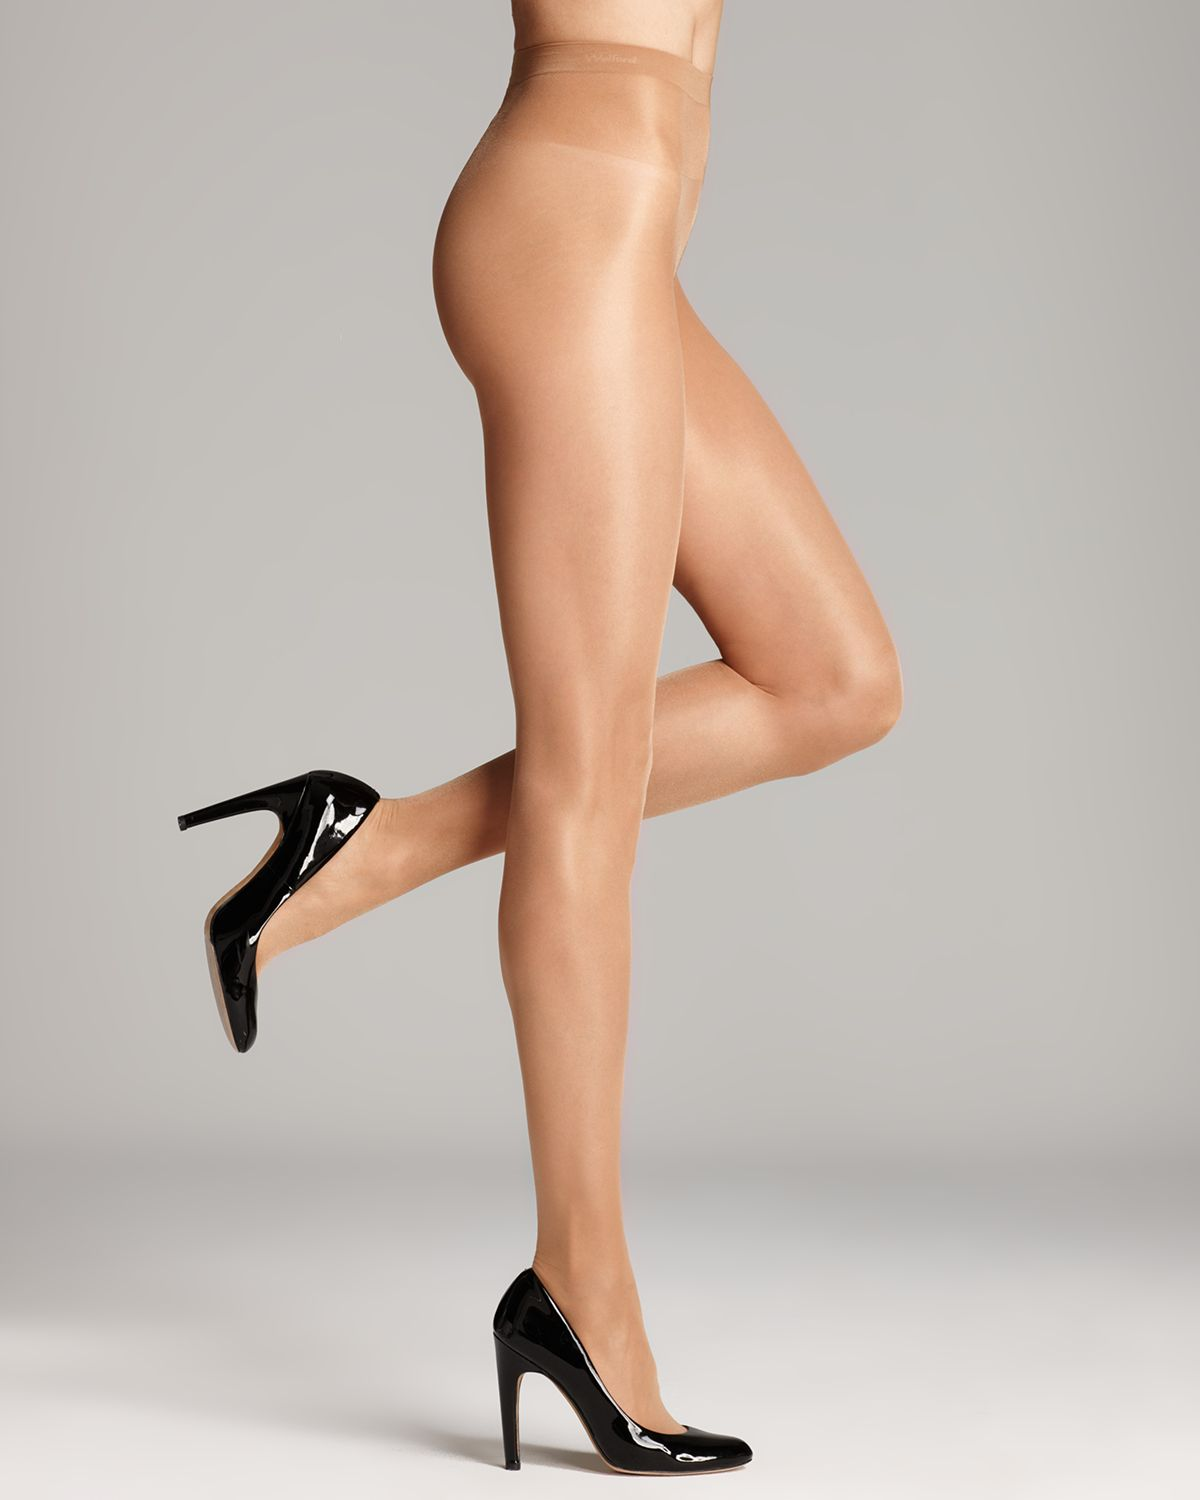 ac4c5e109df77 Wolford Sheer Tights - Satin Touch 20 #018378 in Natural - Lyst